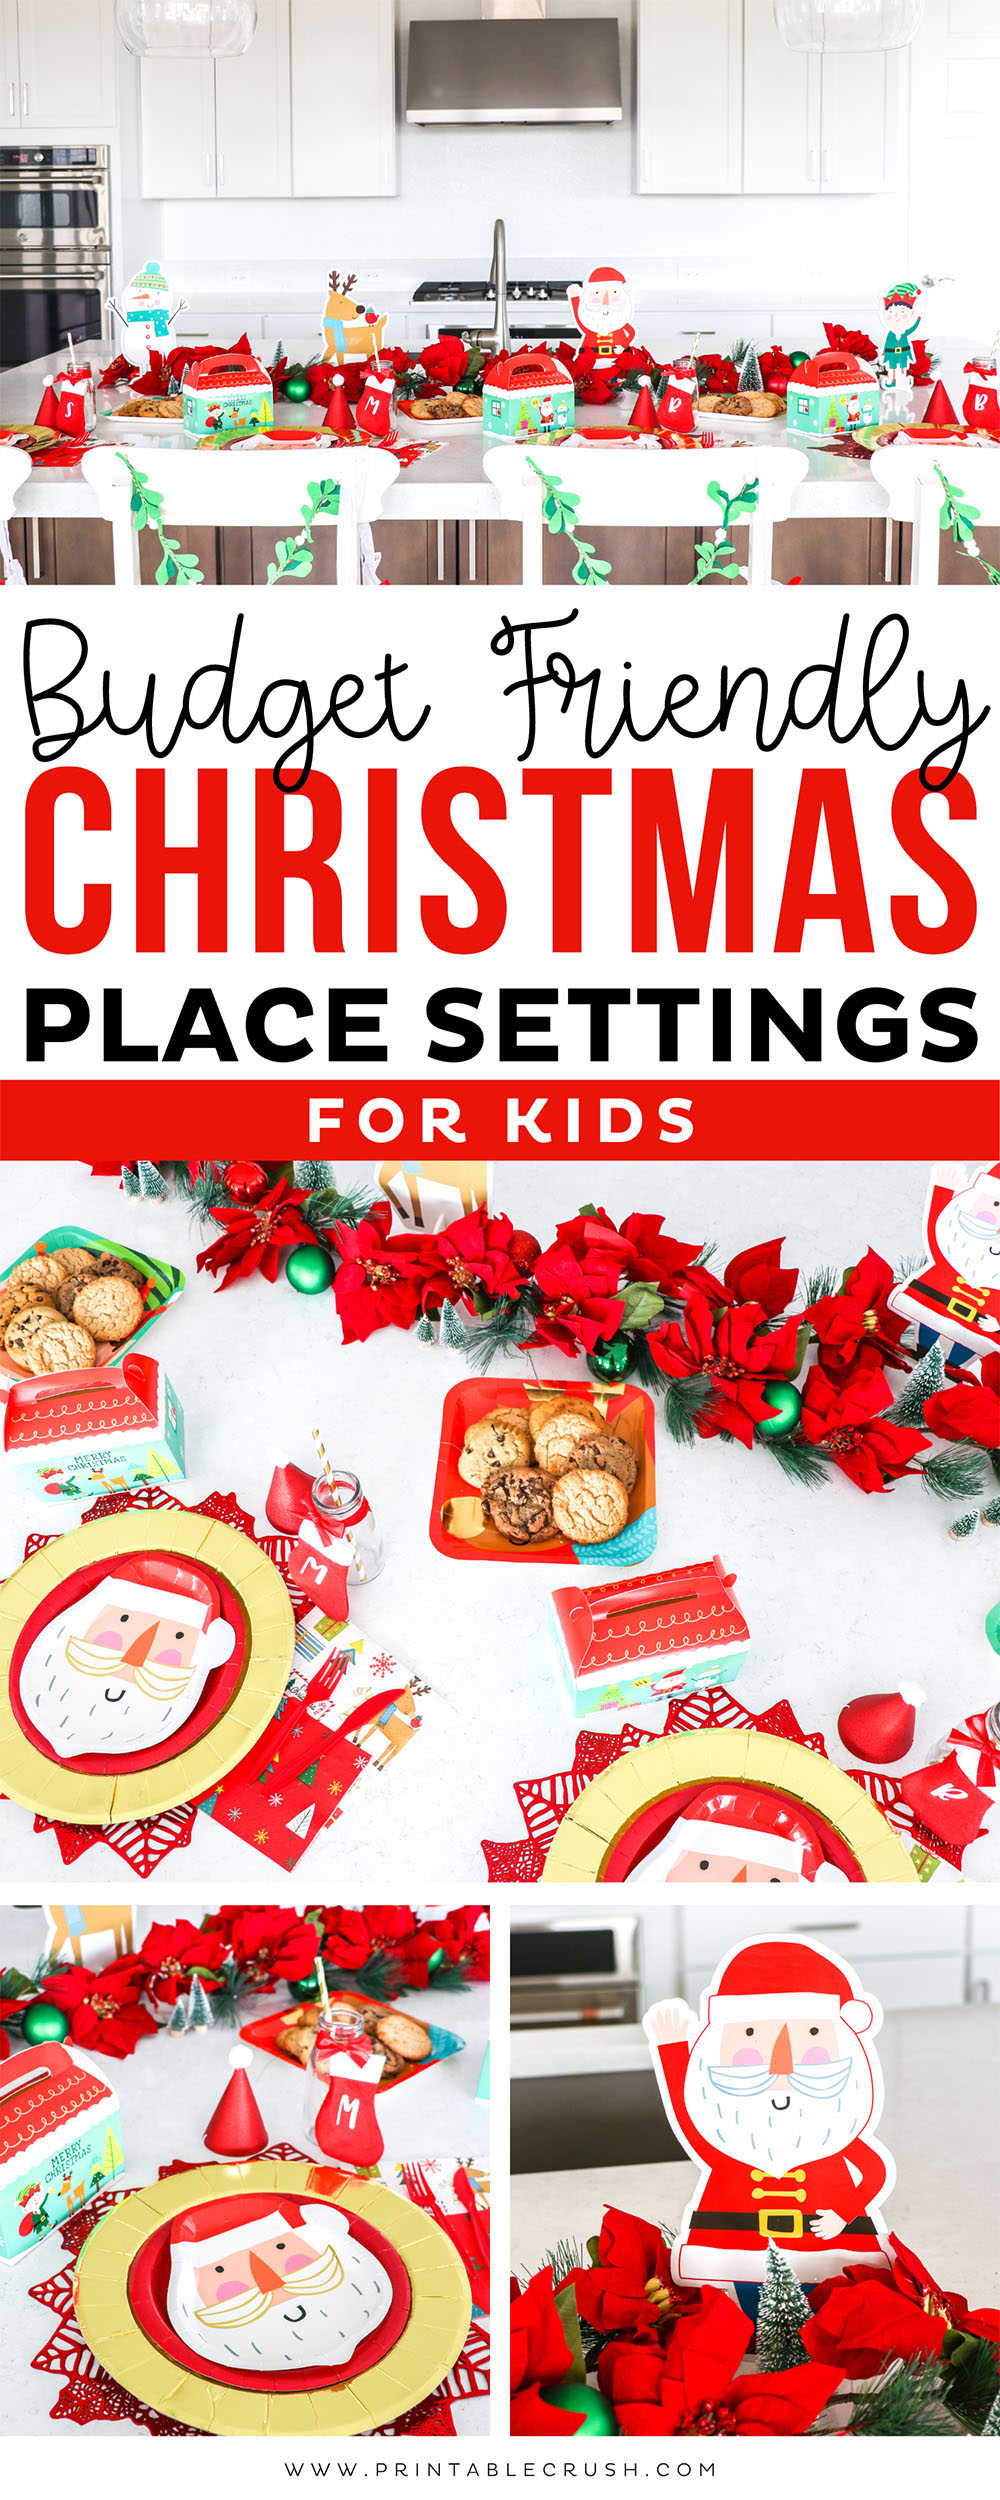 Kids Christmas Party Ideas - Kids Christmas Place Settings - Kids Holiday Party Ideas - Holiday Place Settings - Christmas Place Settings